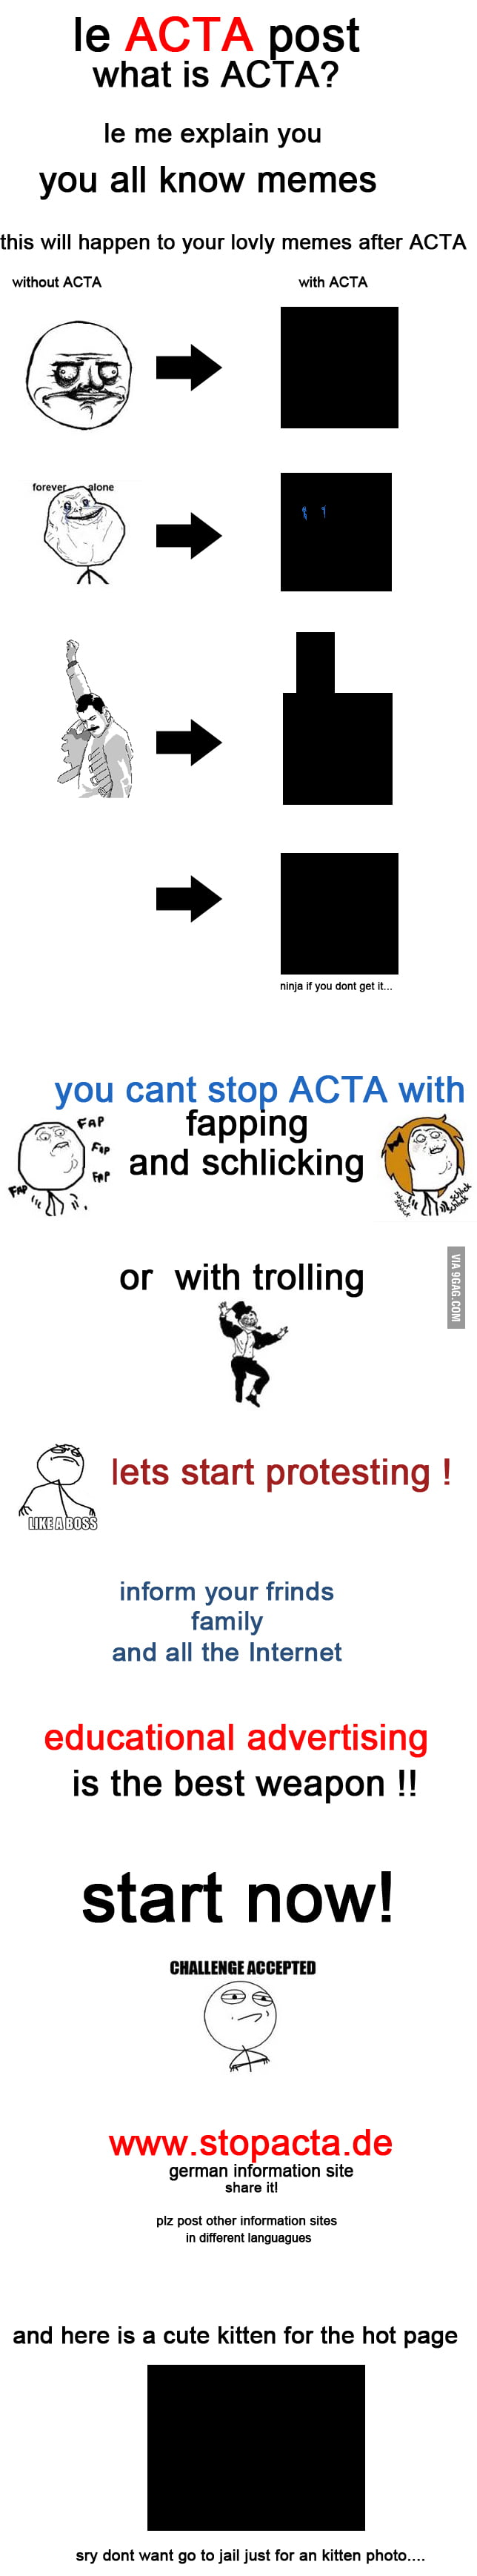 ACTA - dont take us our kittens